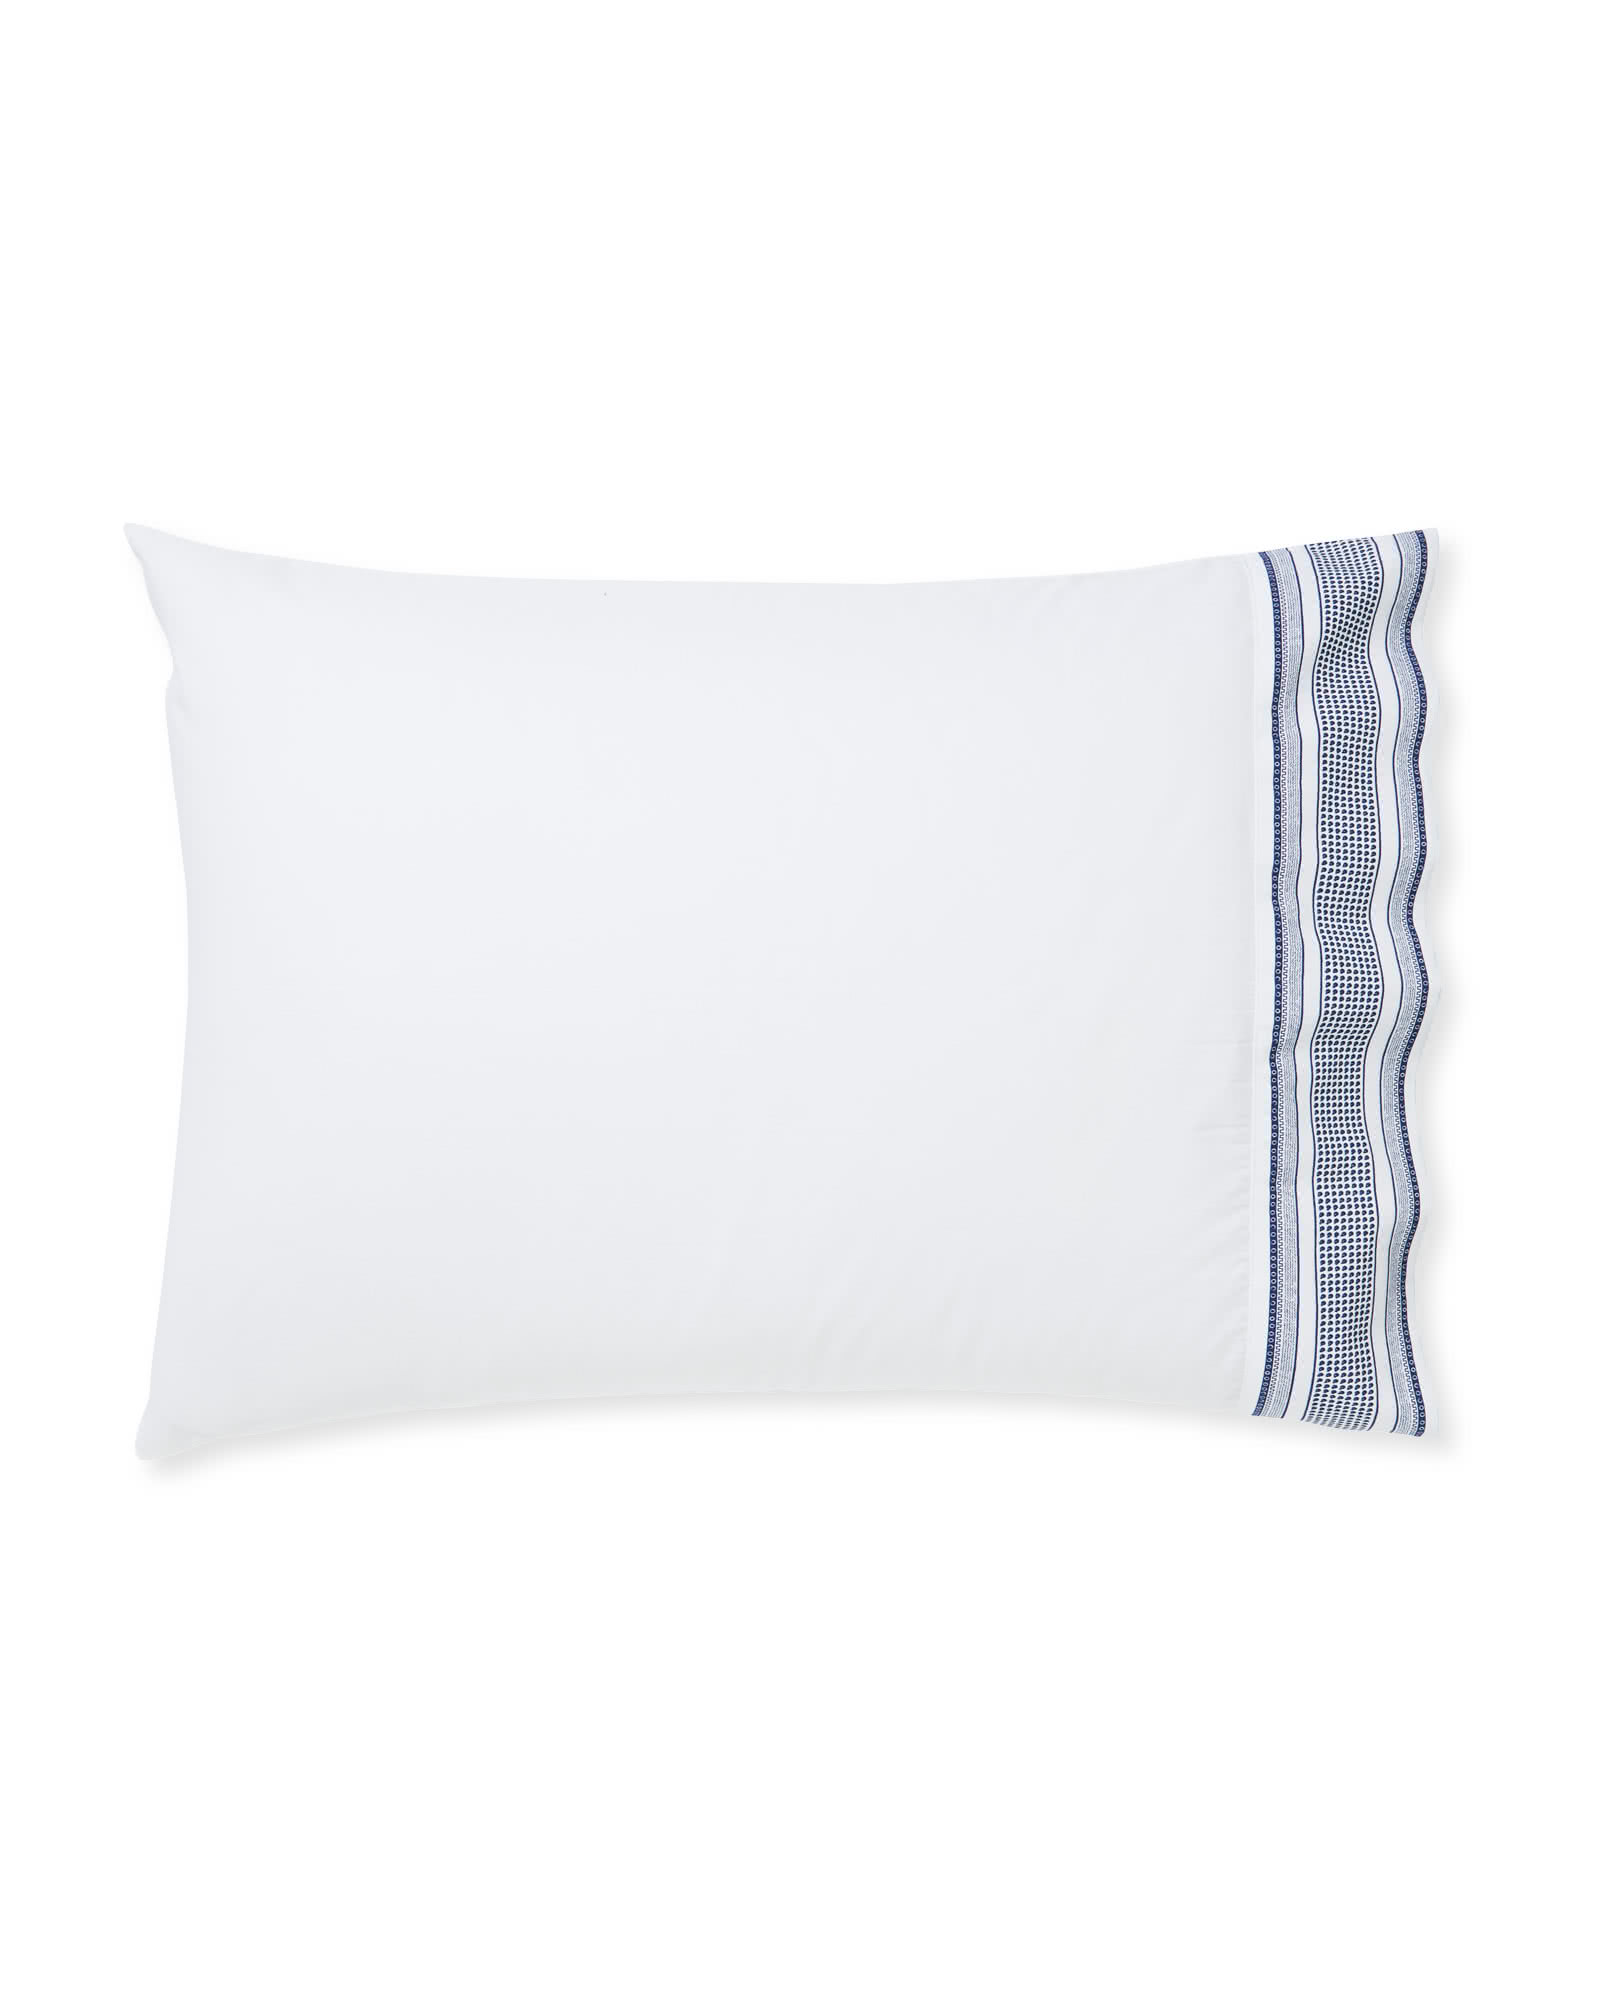 Beaumont Pillowcases (Extra Set of 2),